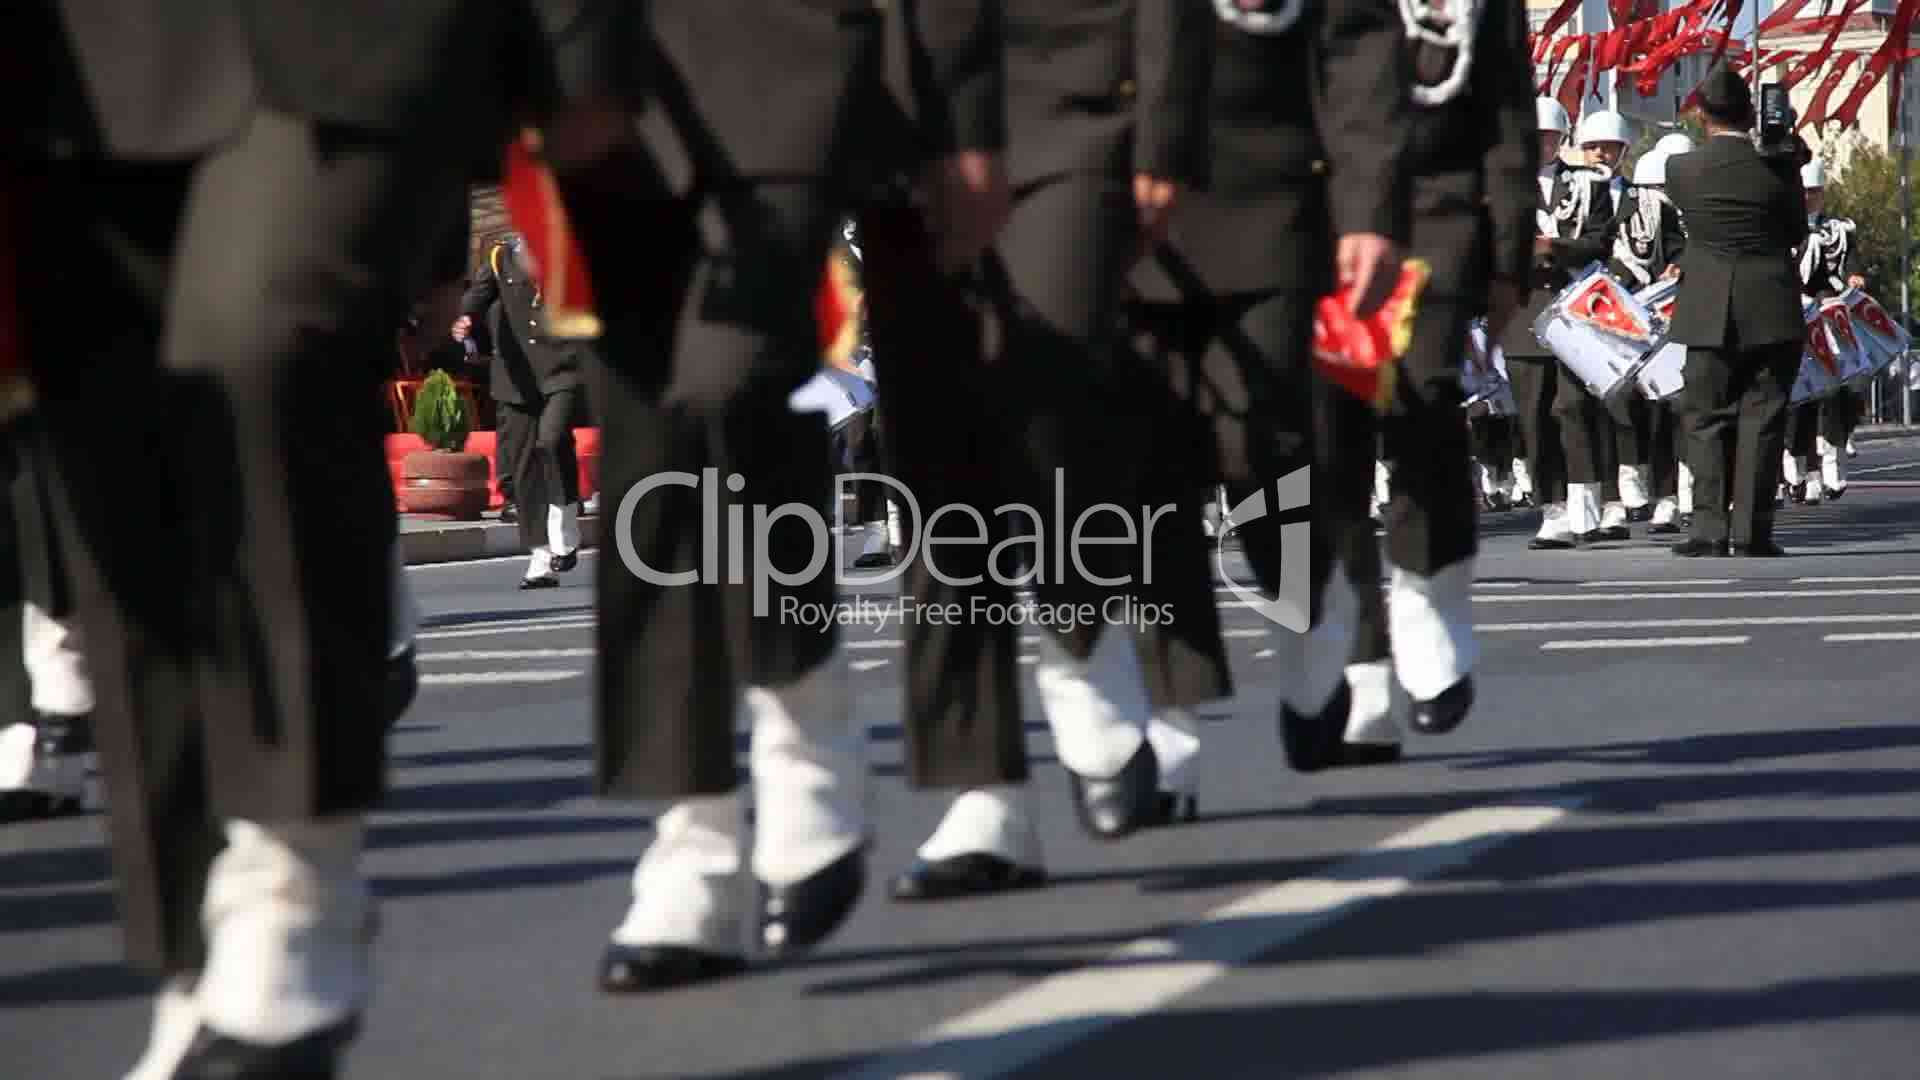 Military Brass Band Walk On The Road: Royalty-free video and stock